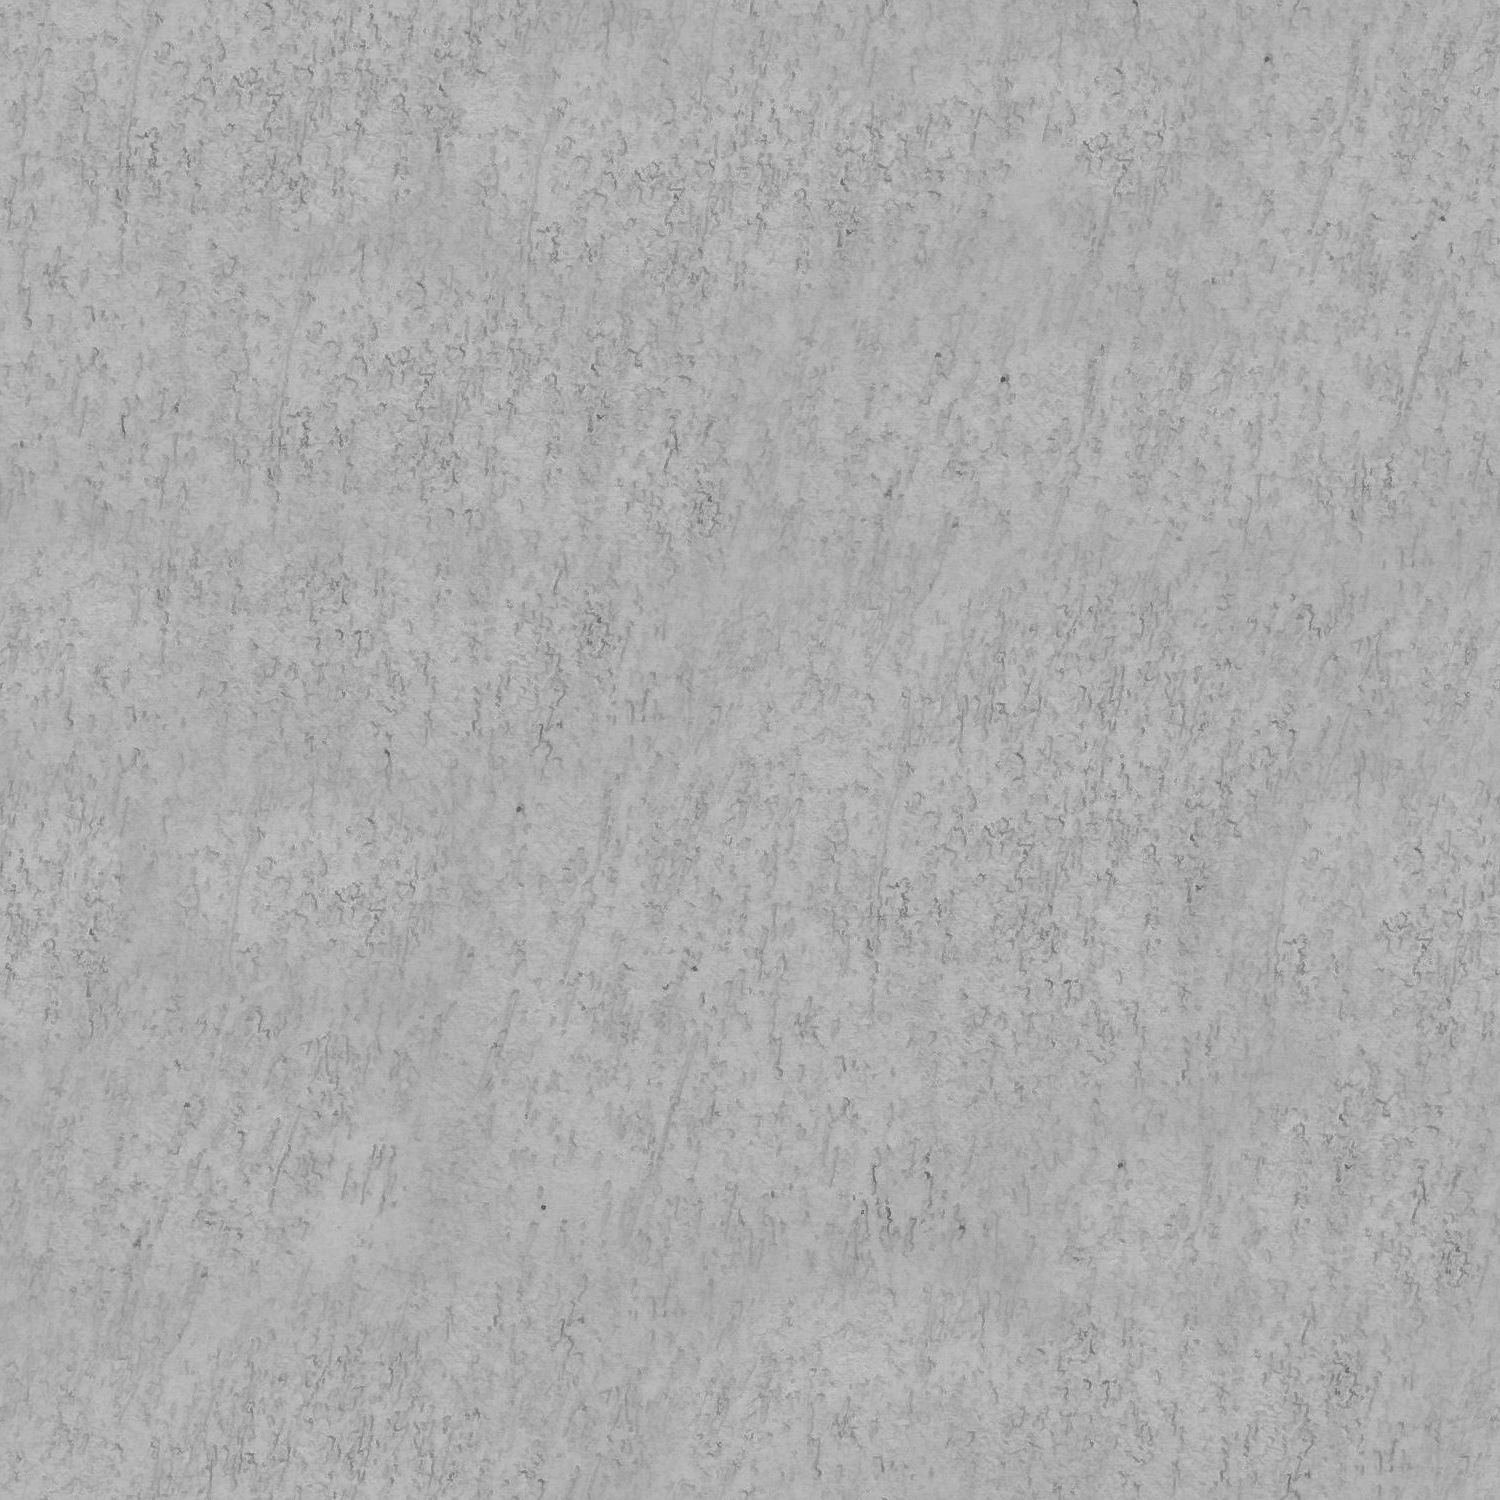 metal wall texture. Tileable Stucco Wall Texture #17 Metal Wall Texture